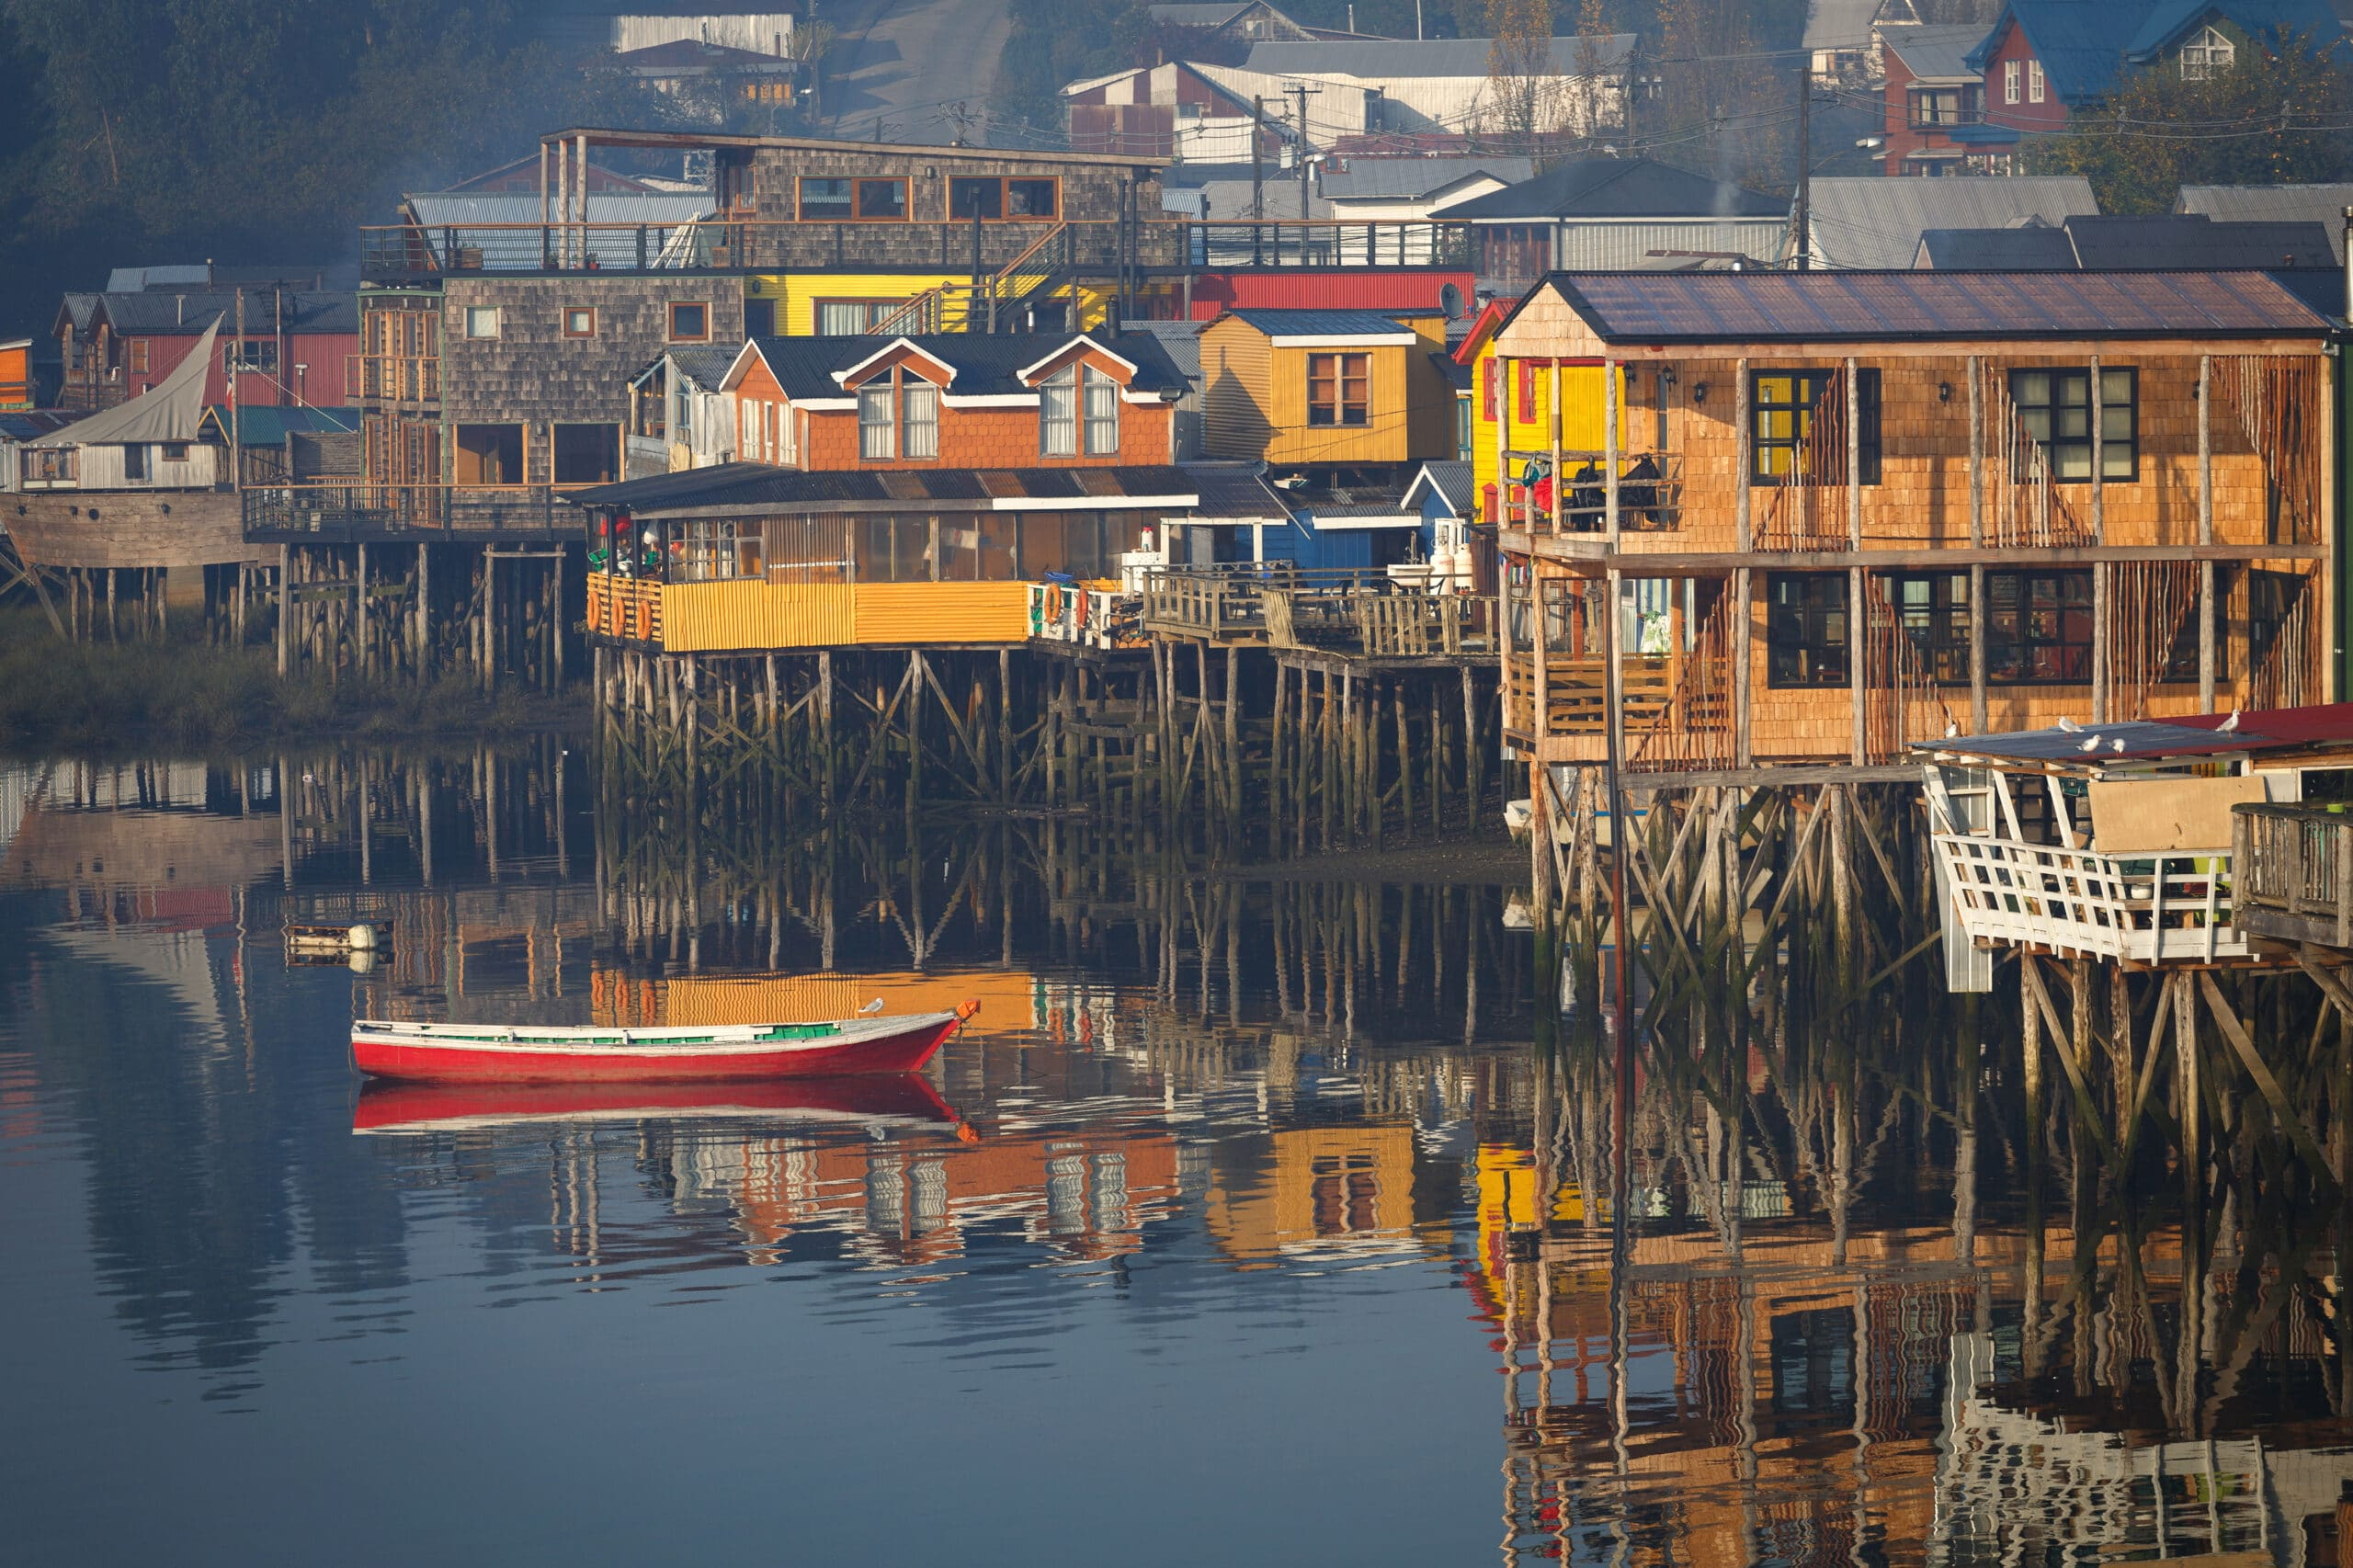 Houses on stilts (palafitos) in Castro, Chiloe